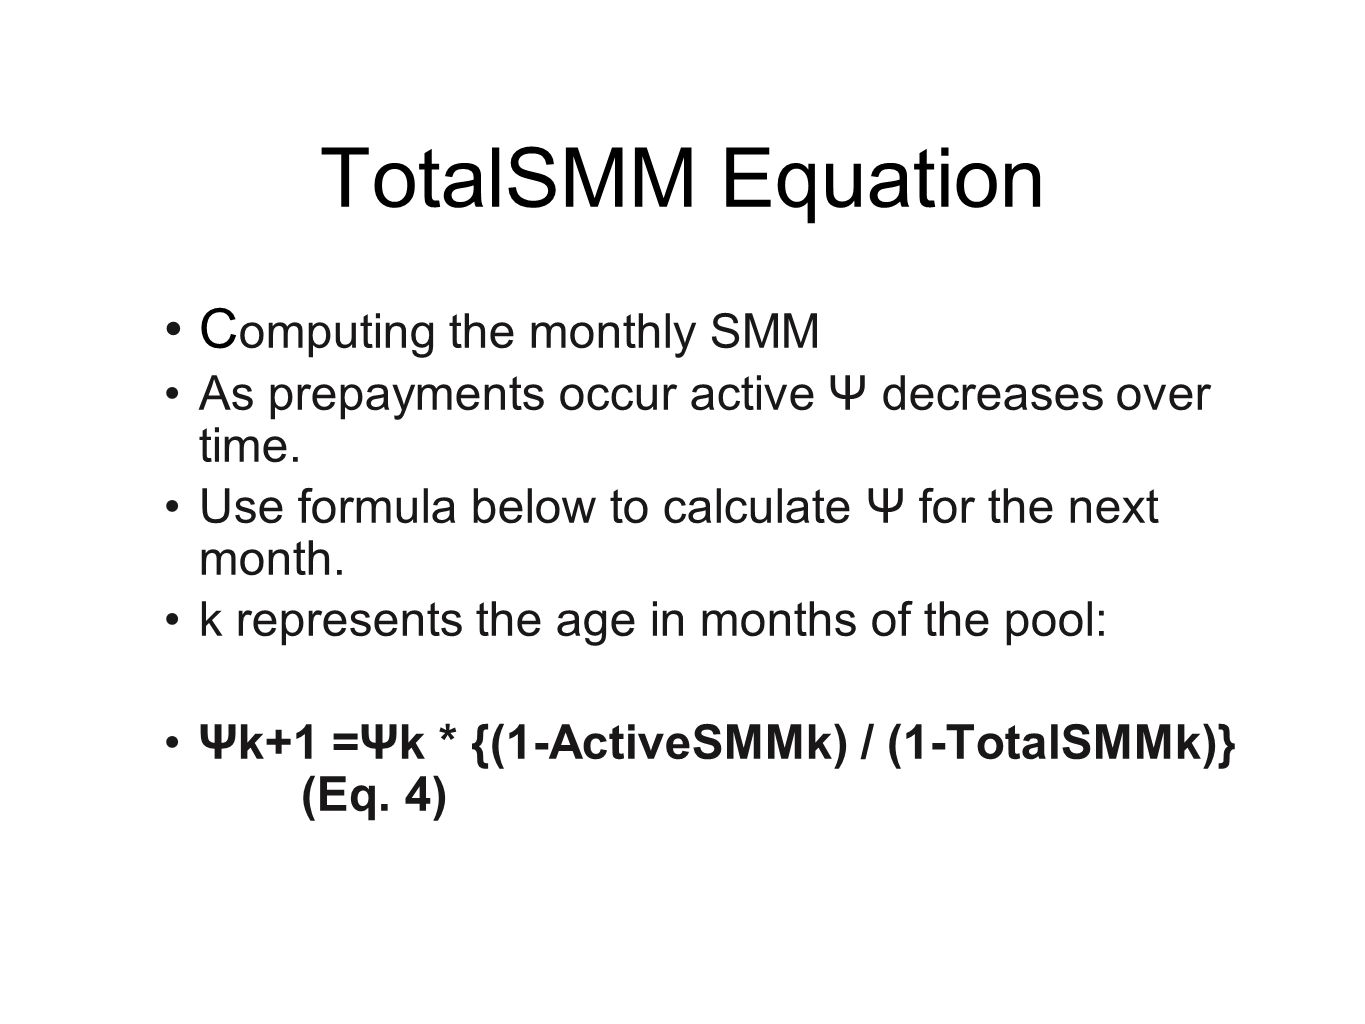 TotalSMM Equation C omputing the monthly SMM As prepayments occur active Ψ decreases over time. Use formula below to calculate Ψ for the next month. k